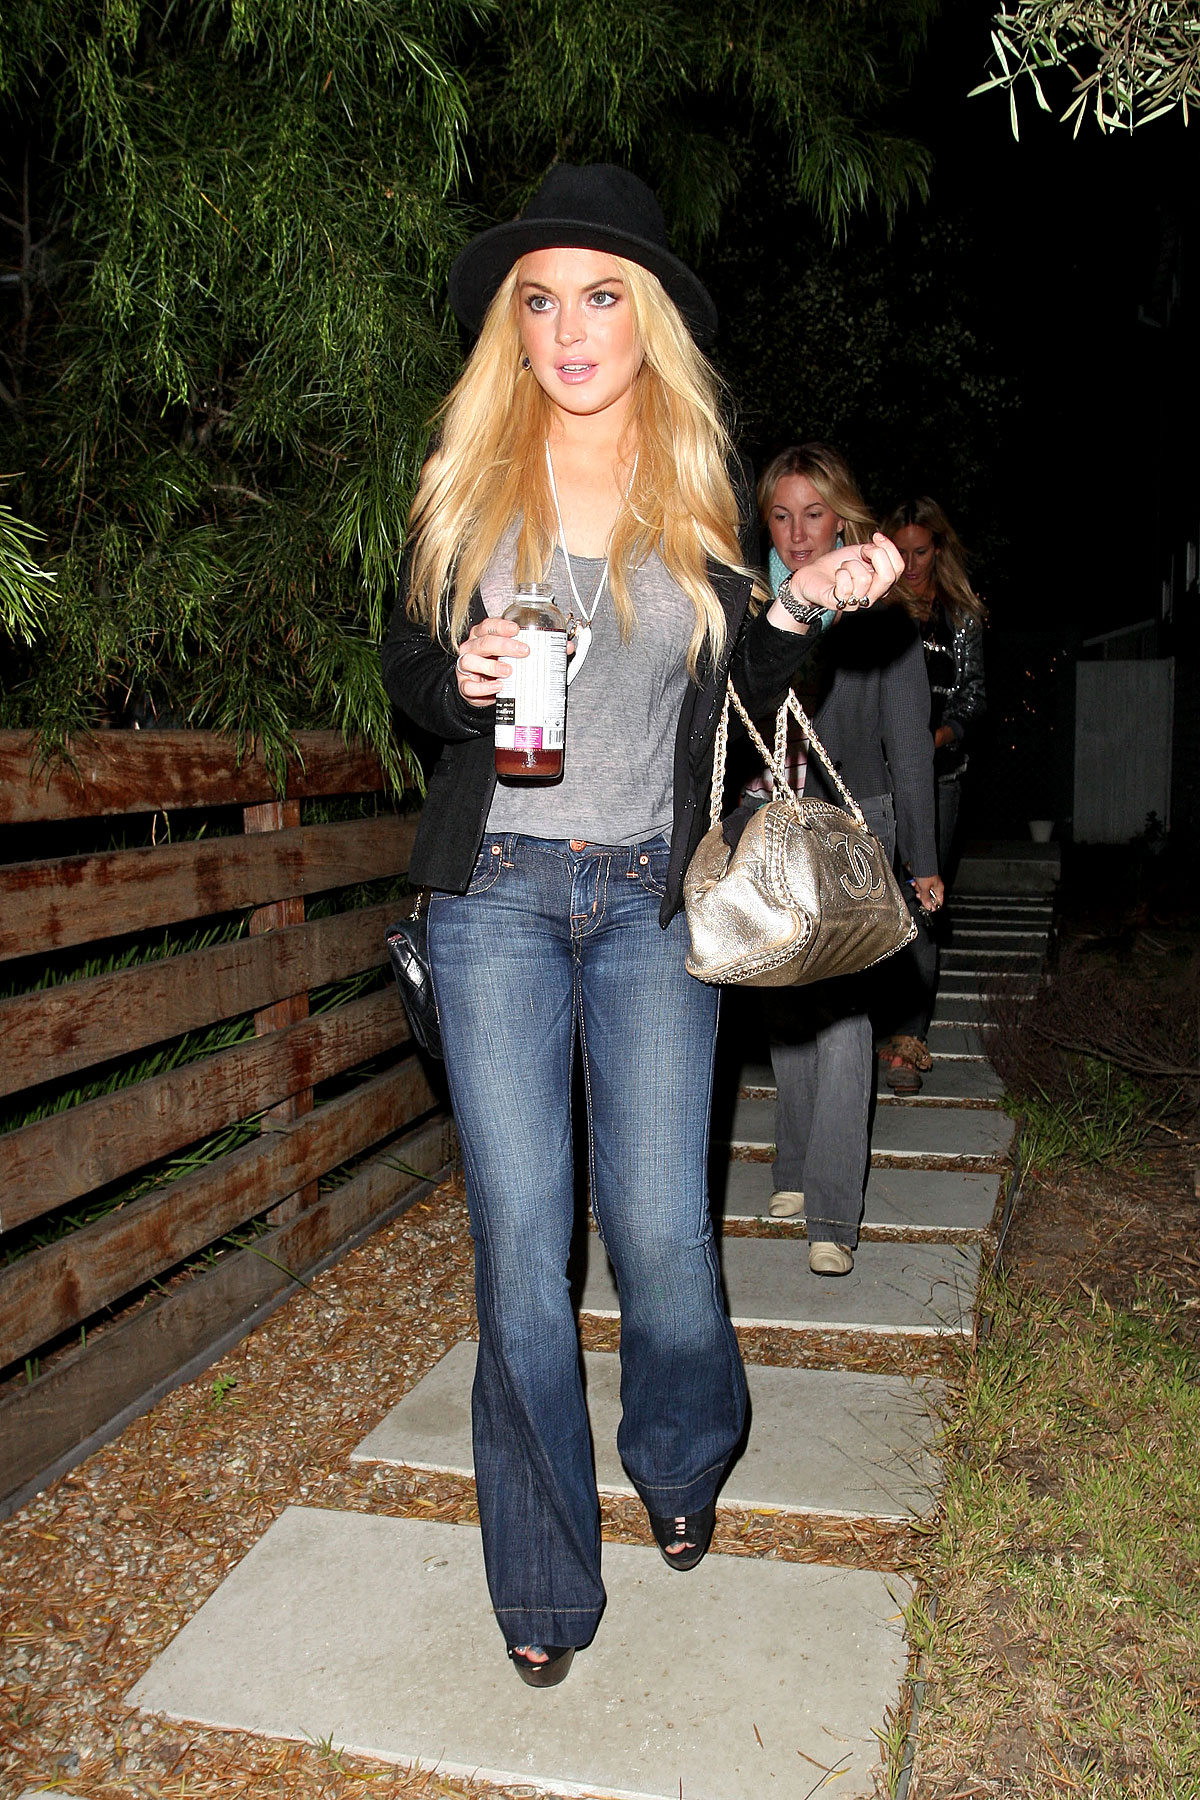 Lindsay Lohan Hides Ankle Bracelet With Ugly Jeans (PHOTOS)